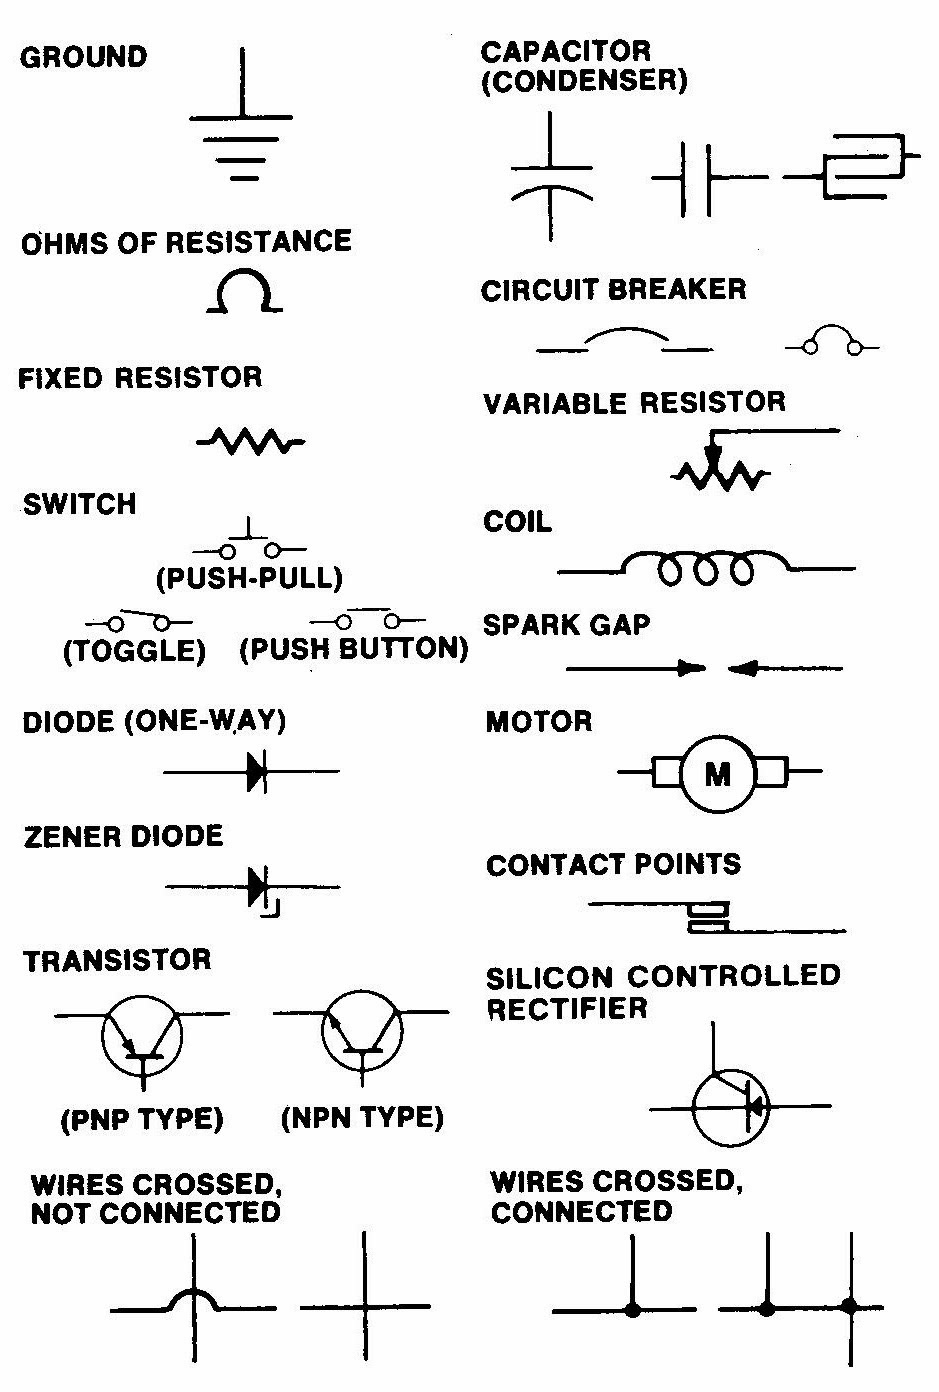 blank auto mobile wiring diagrams schematic wiring diagram detailsfundamentals to understanding automobile electrical and vacuum blank [ 939 x 1392 Pixel ]